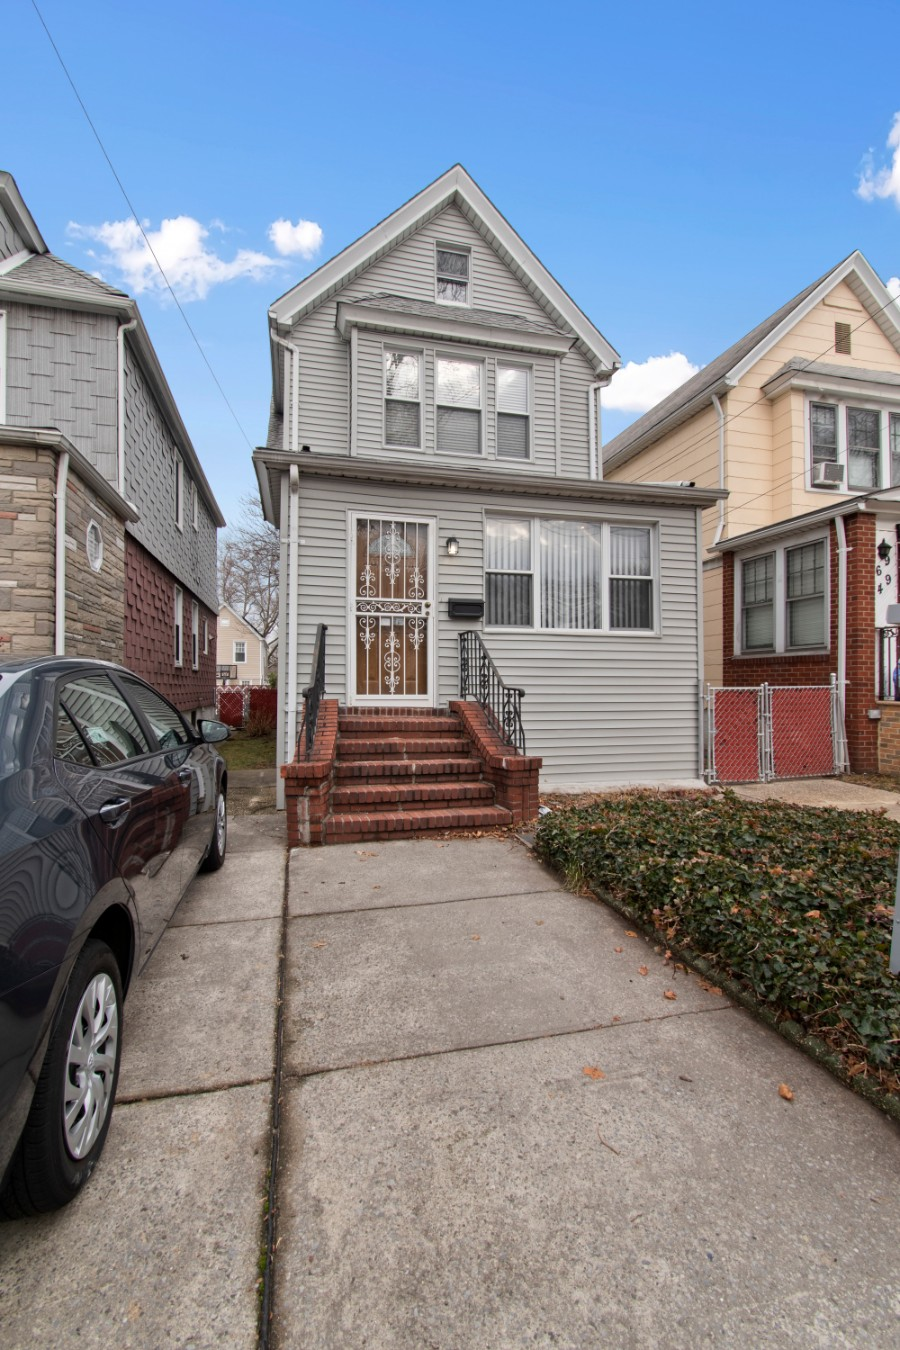 3 House in Forest Hills